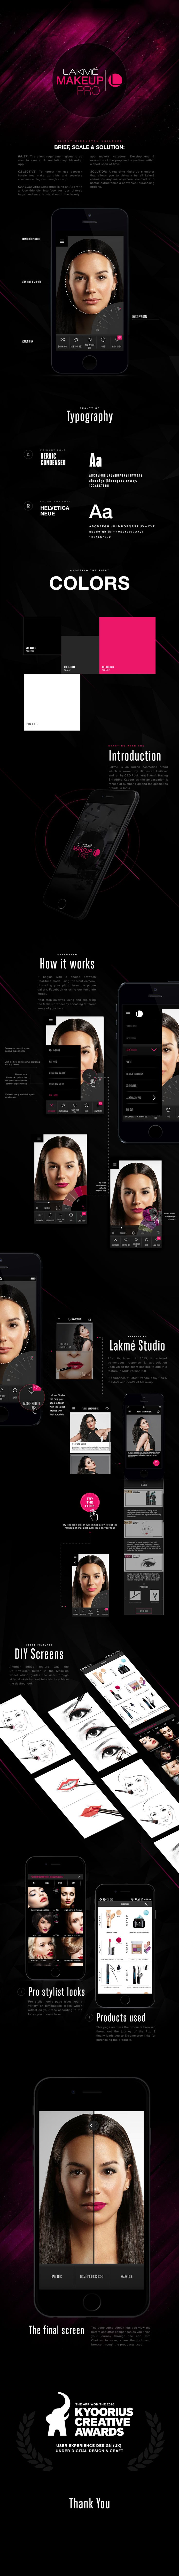 Lakmé Makeup Pro is your very own real time makeover app where the camera becomes your mirror. With this app, you can try out all the latest looks, virtually!